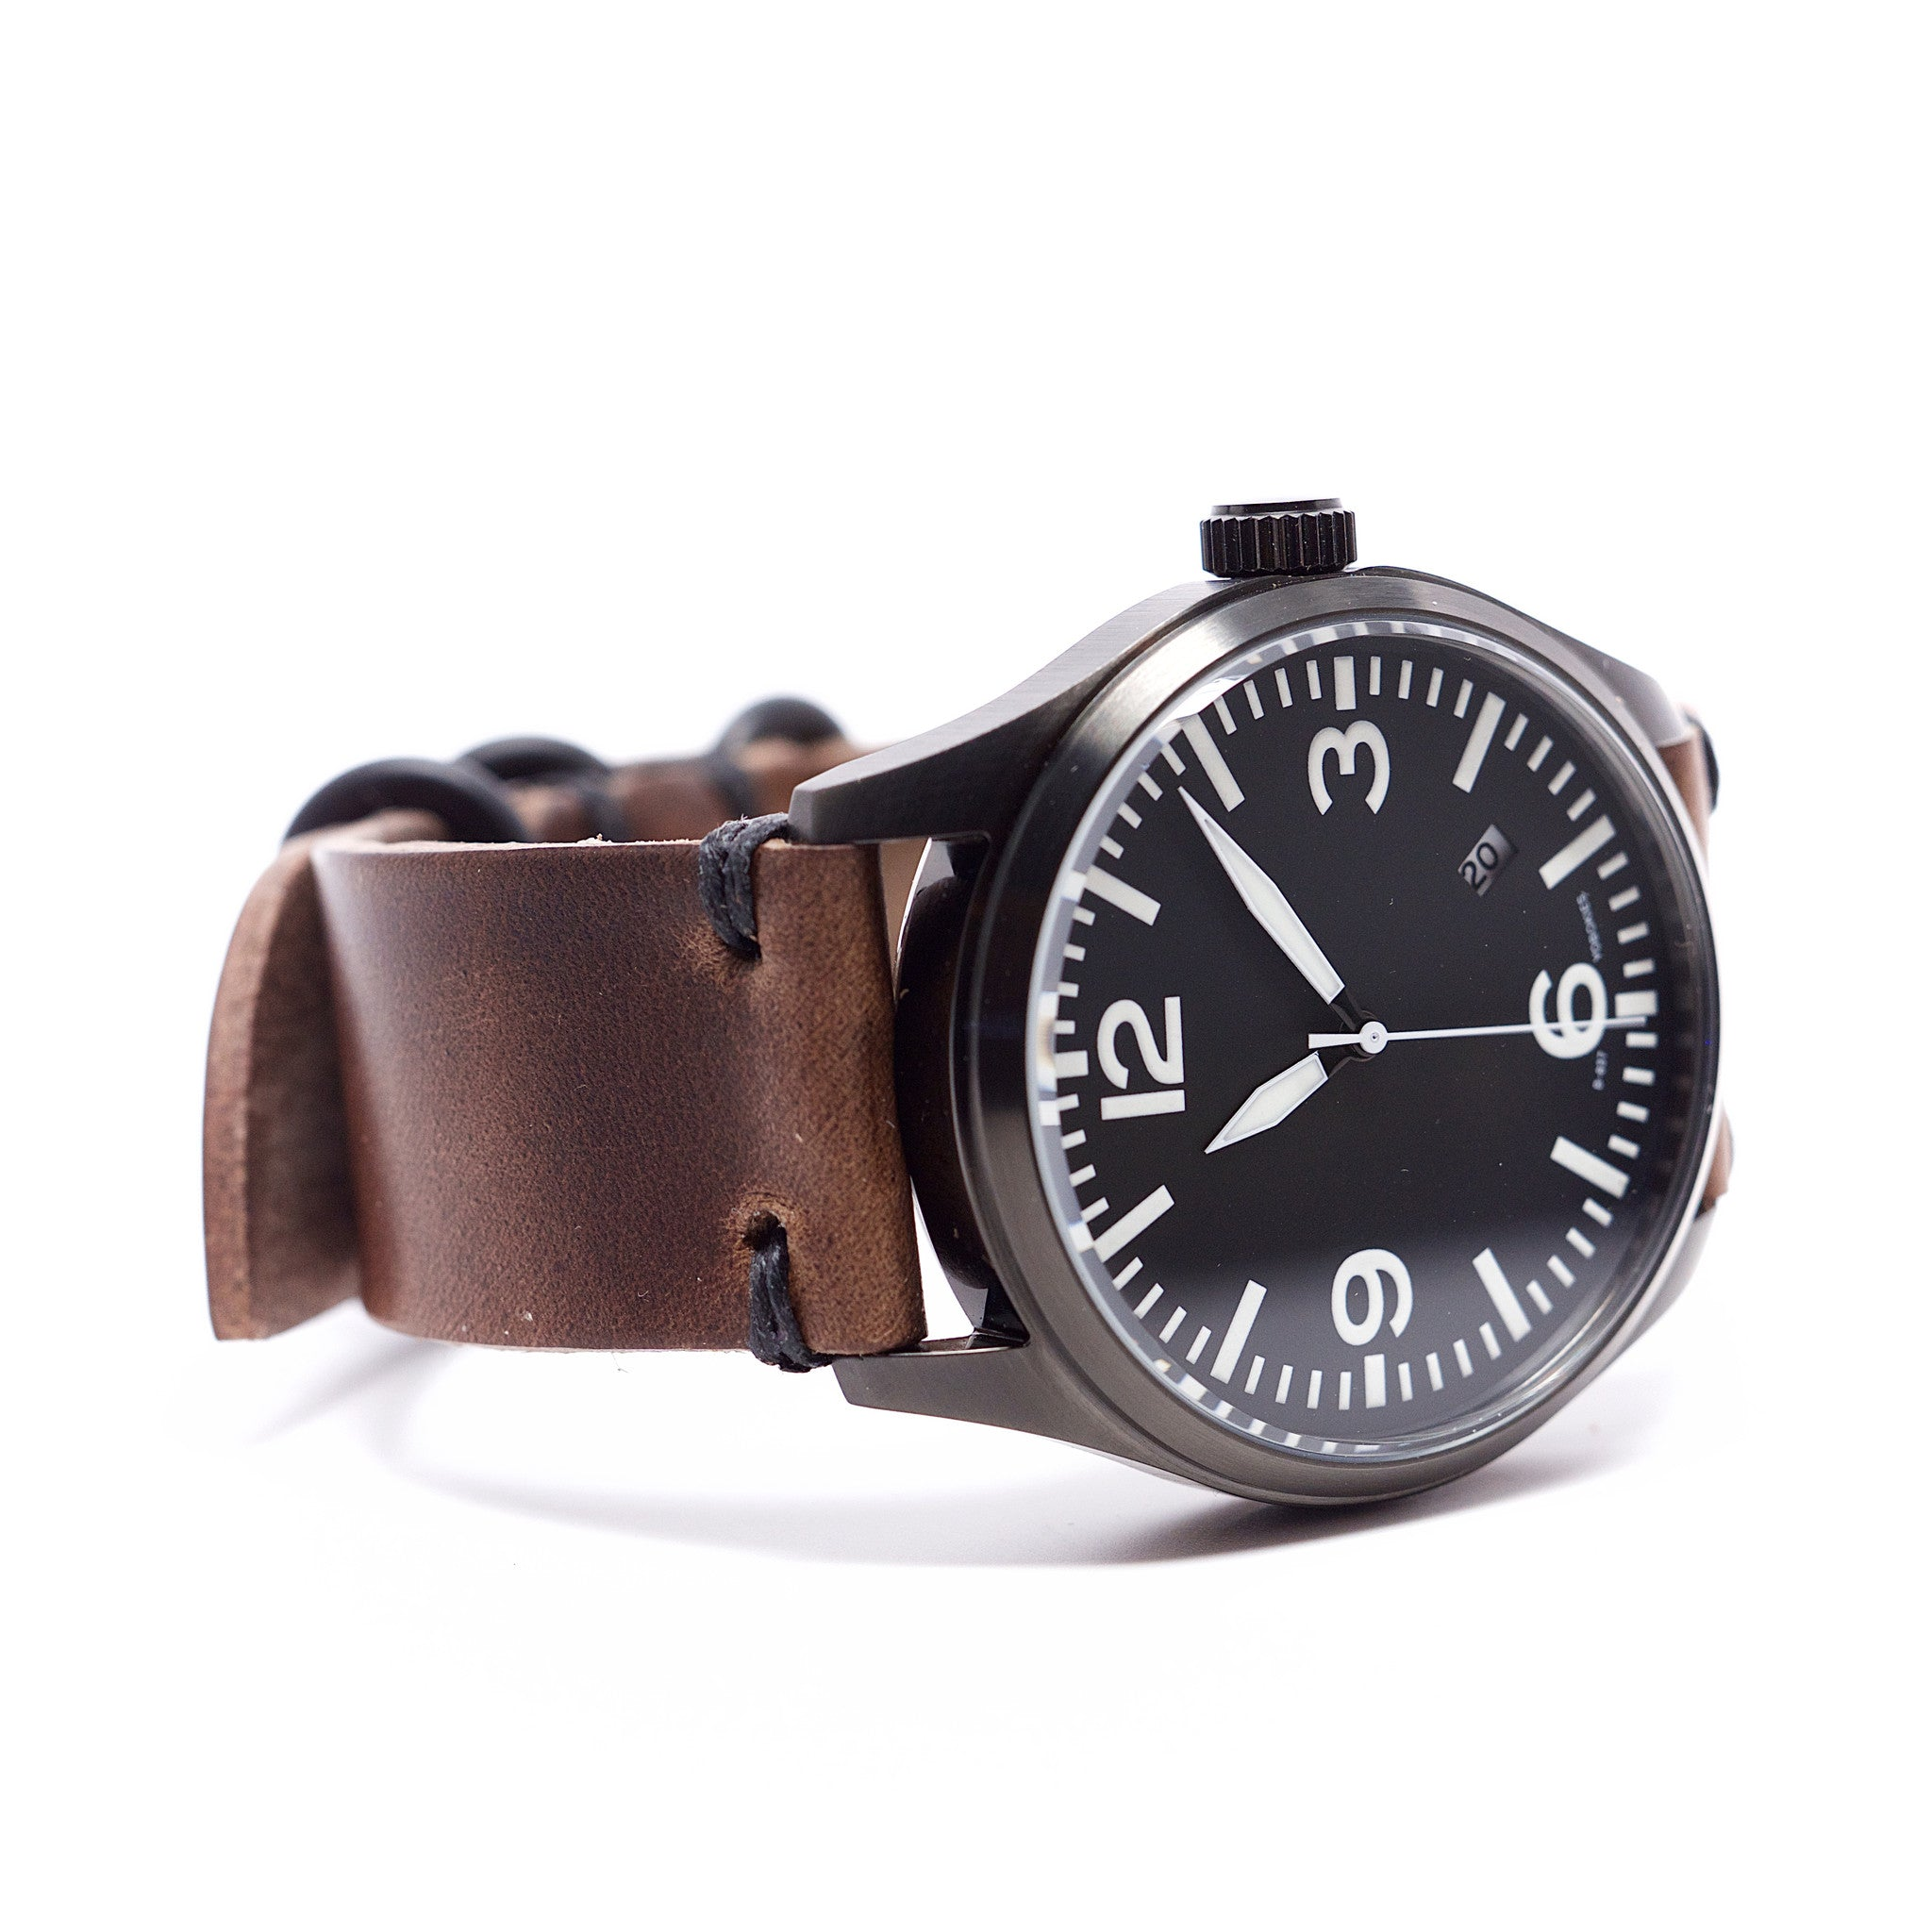 42mm Automatic Aviator Retro Modded Watch by E3 Supply Co